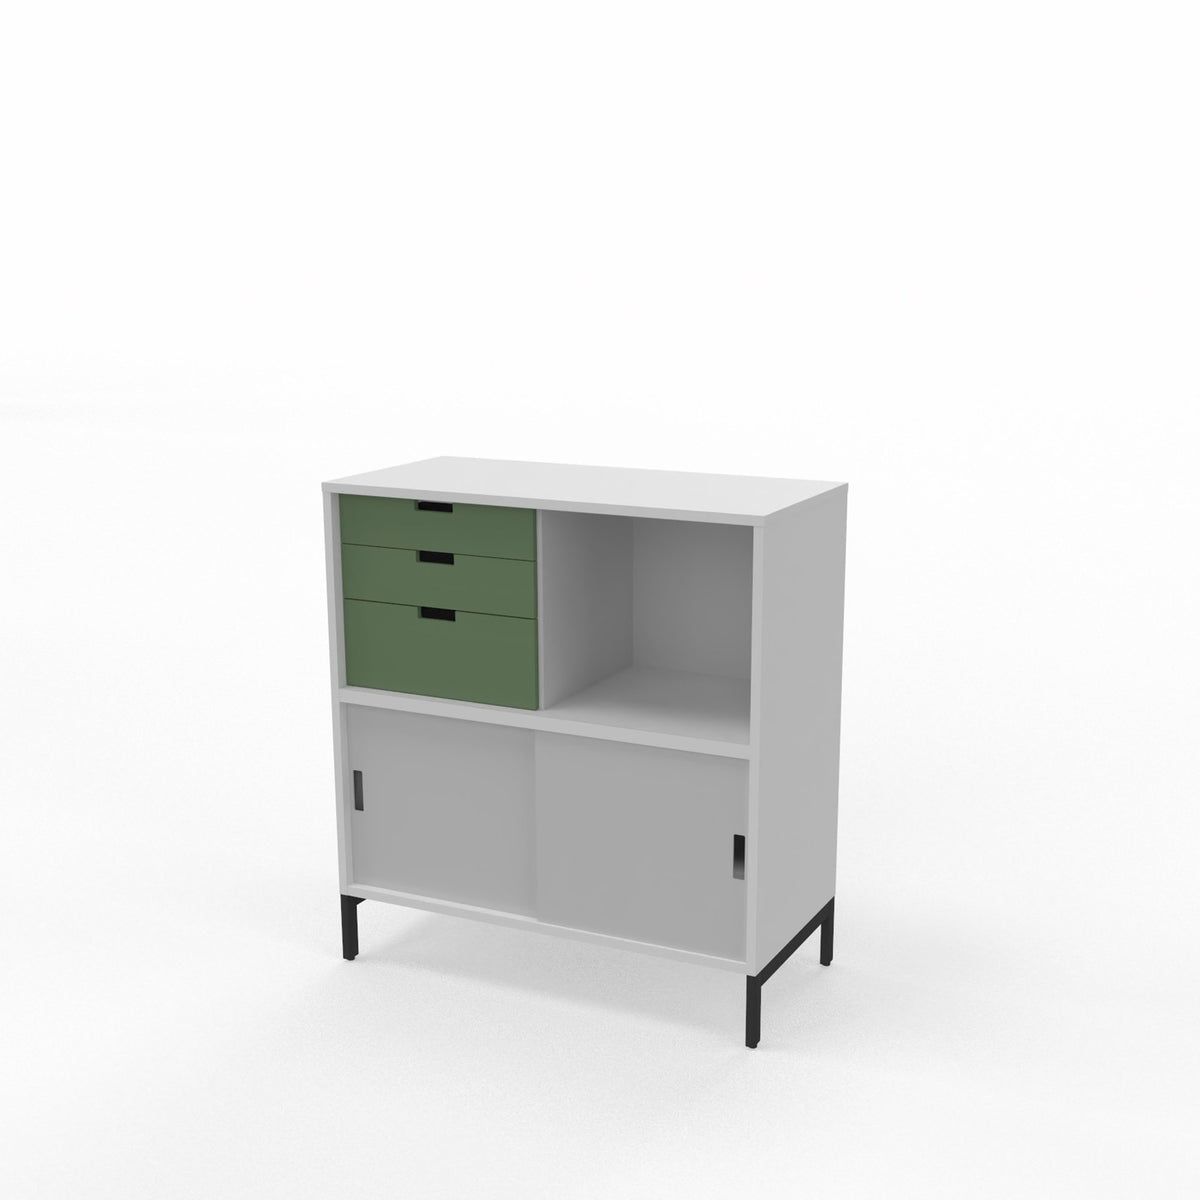 Edsbyn Office Neat Credenza 800m White and Grey with Bay Leaf Green